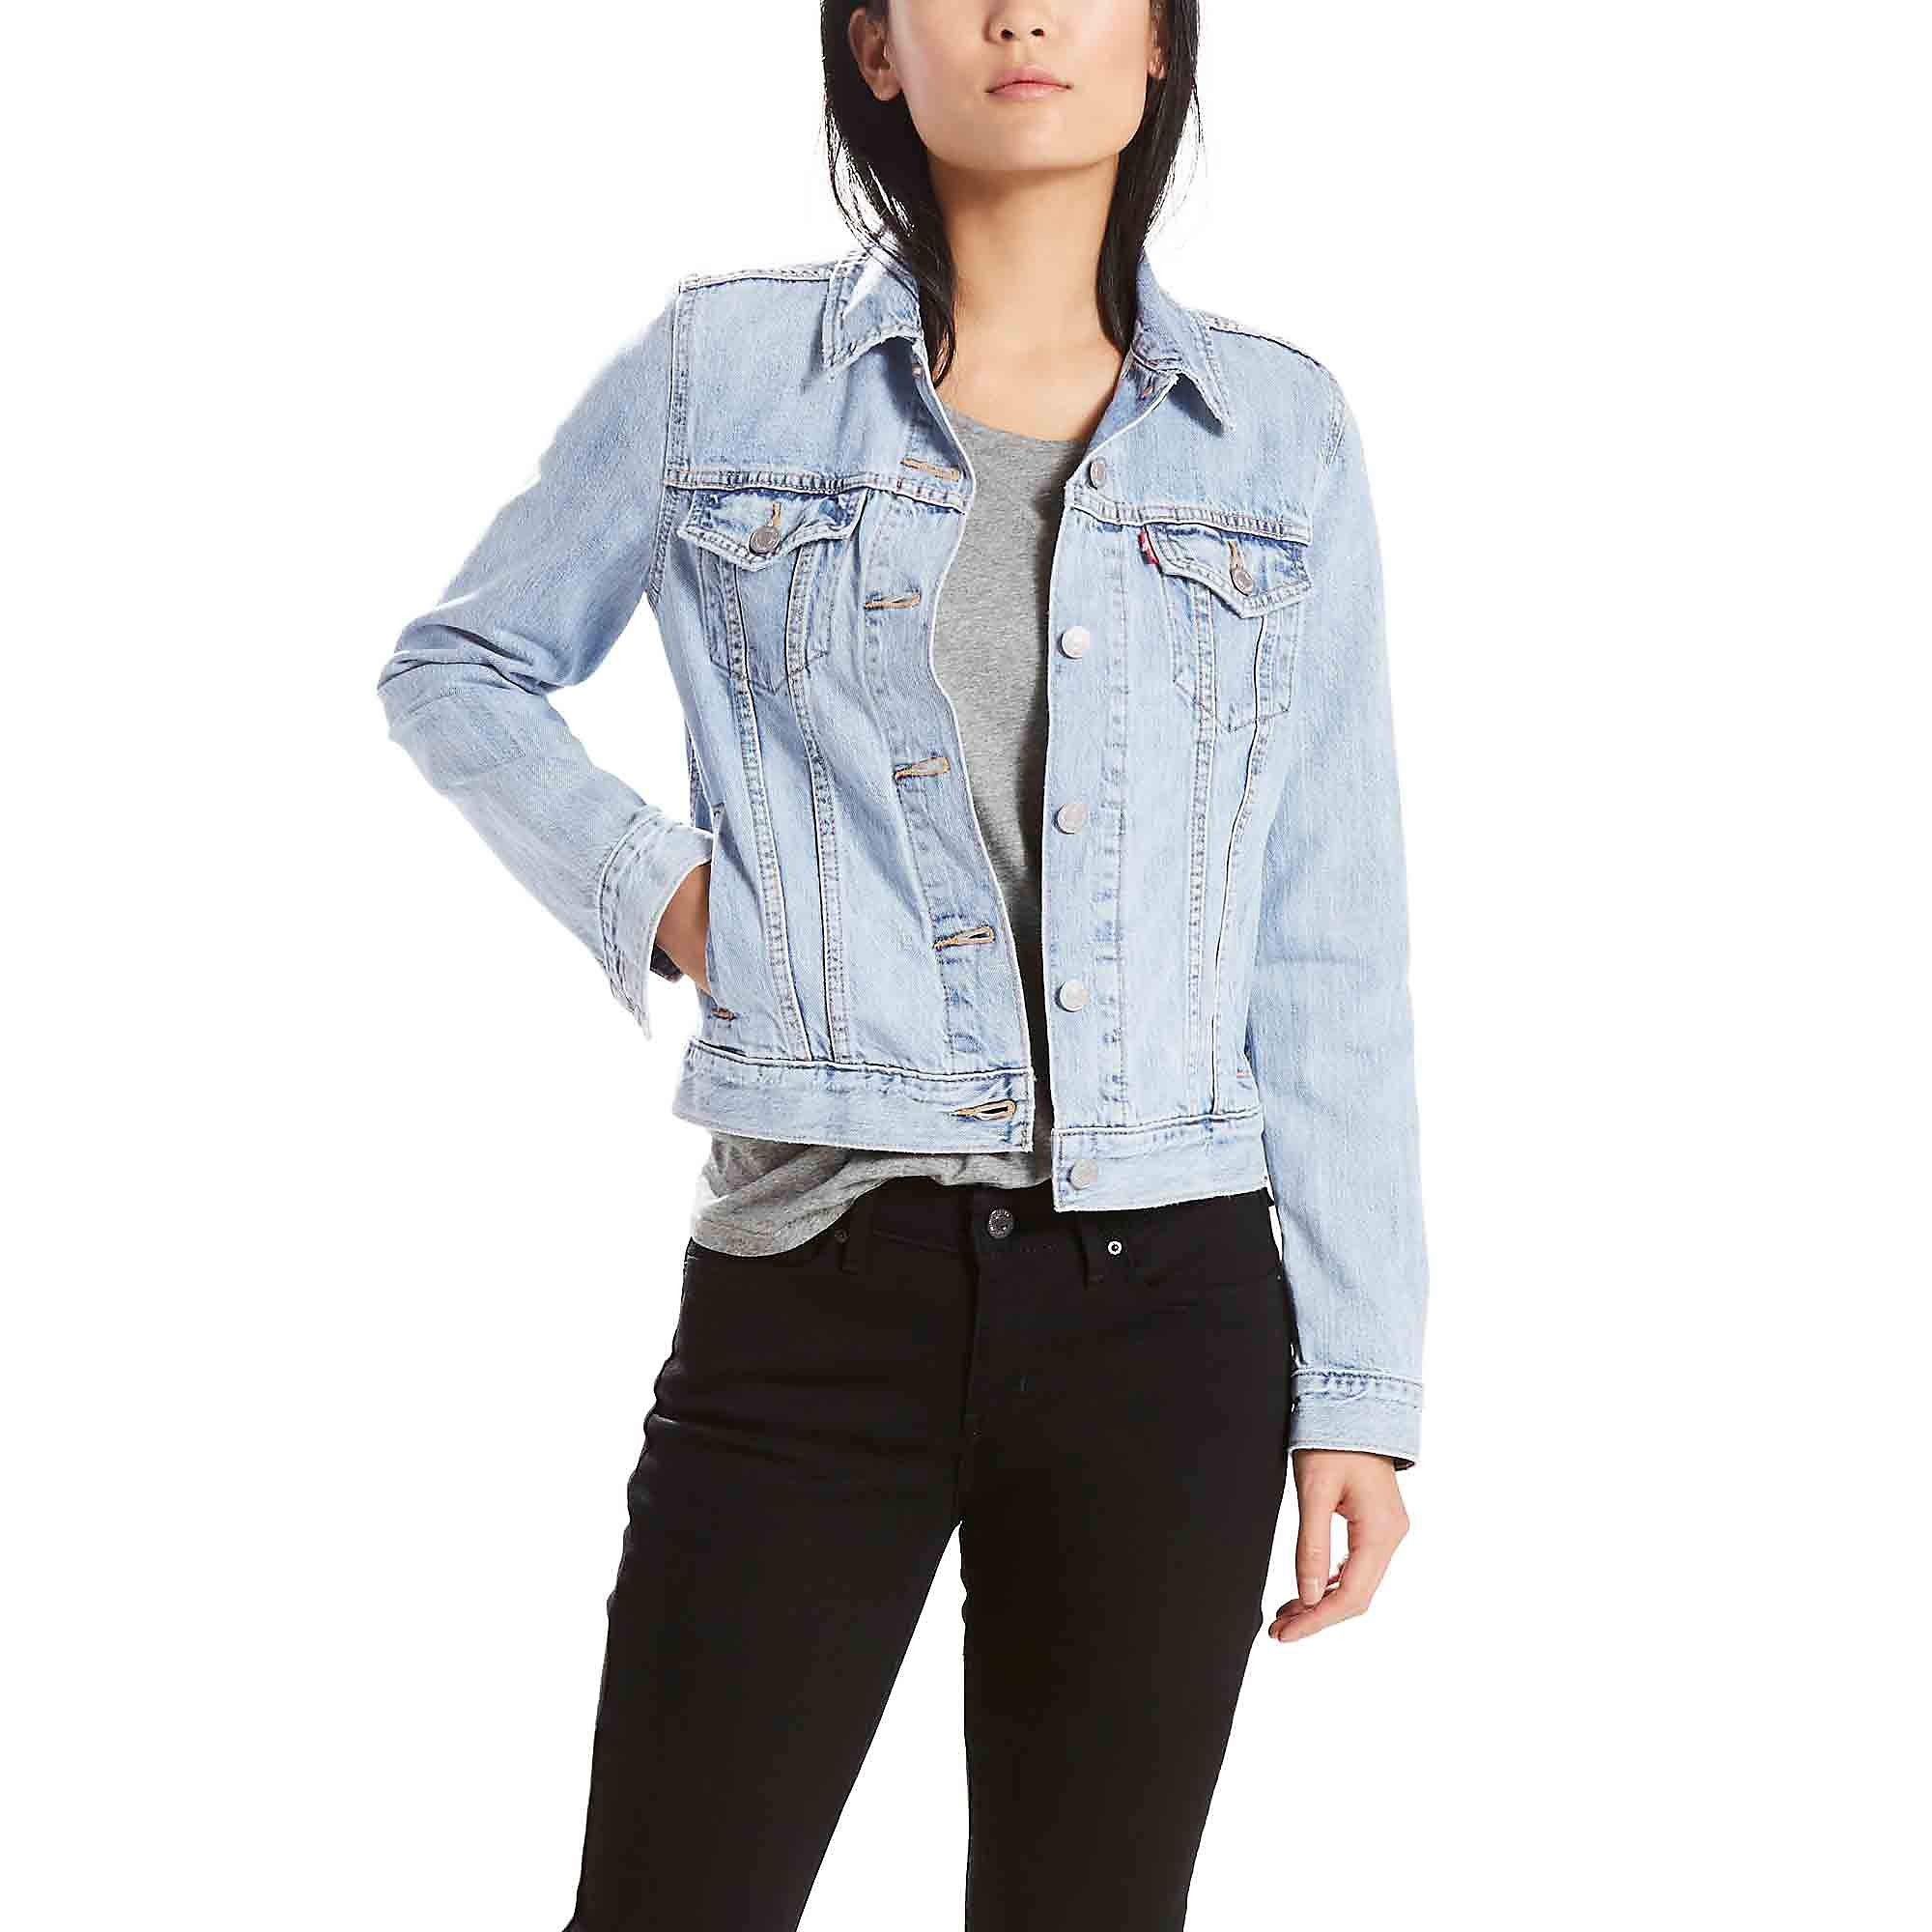 Levi's Original Trucker Jacket - Women's - All Yours S by Levi's